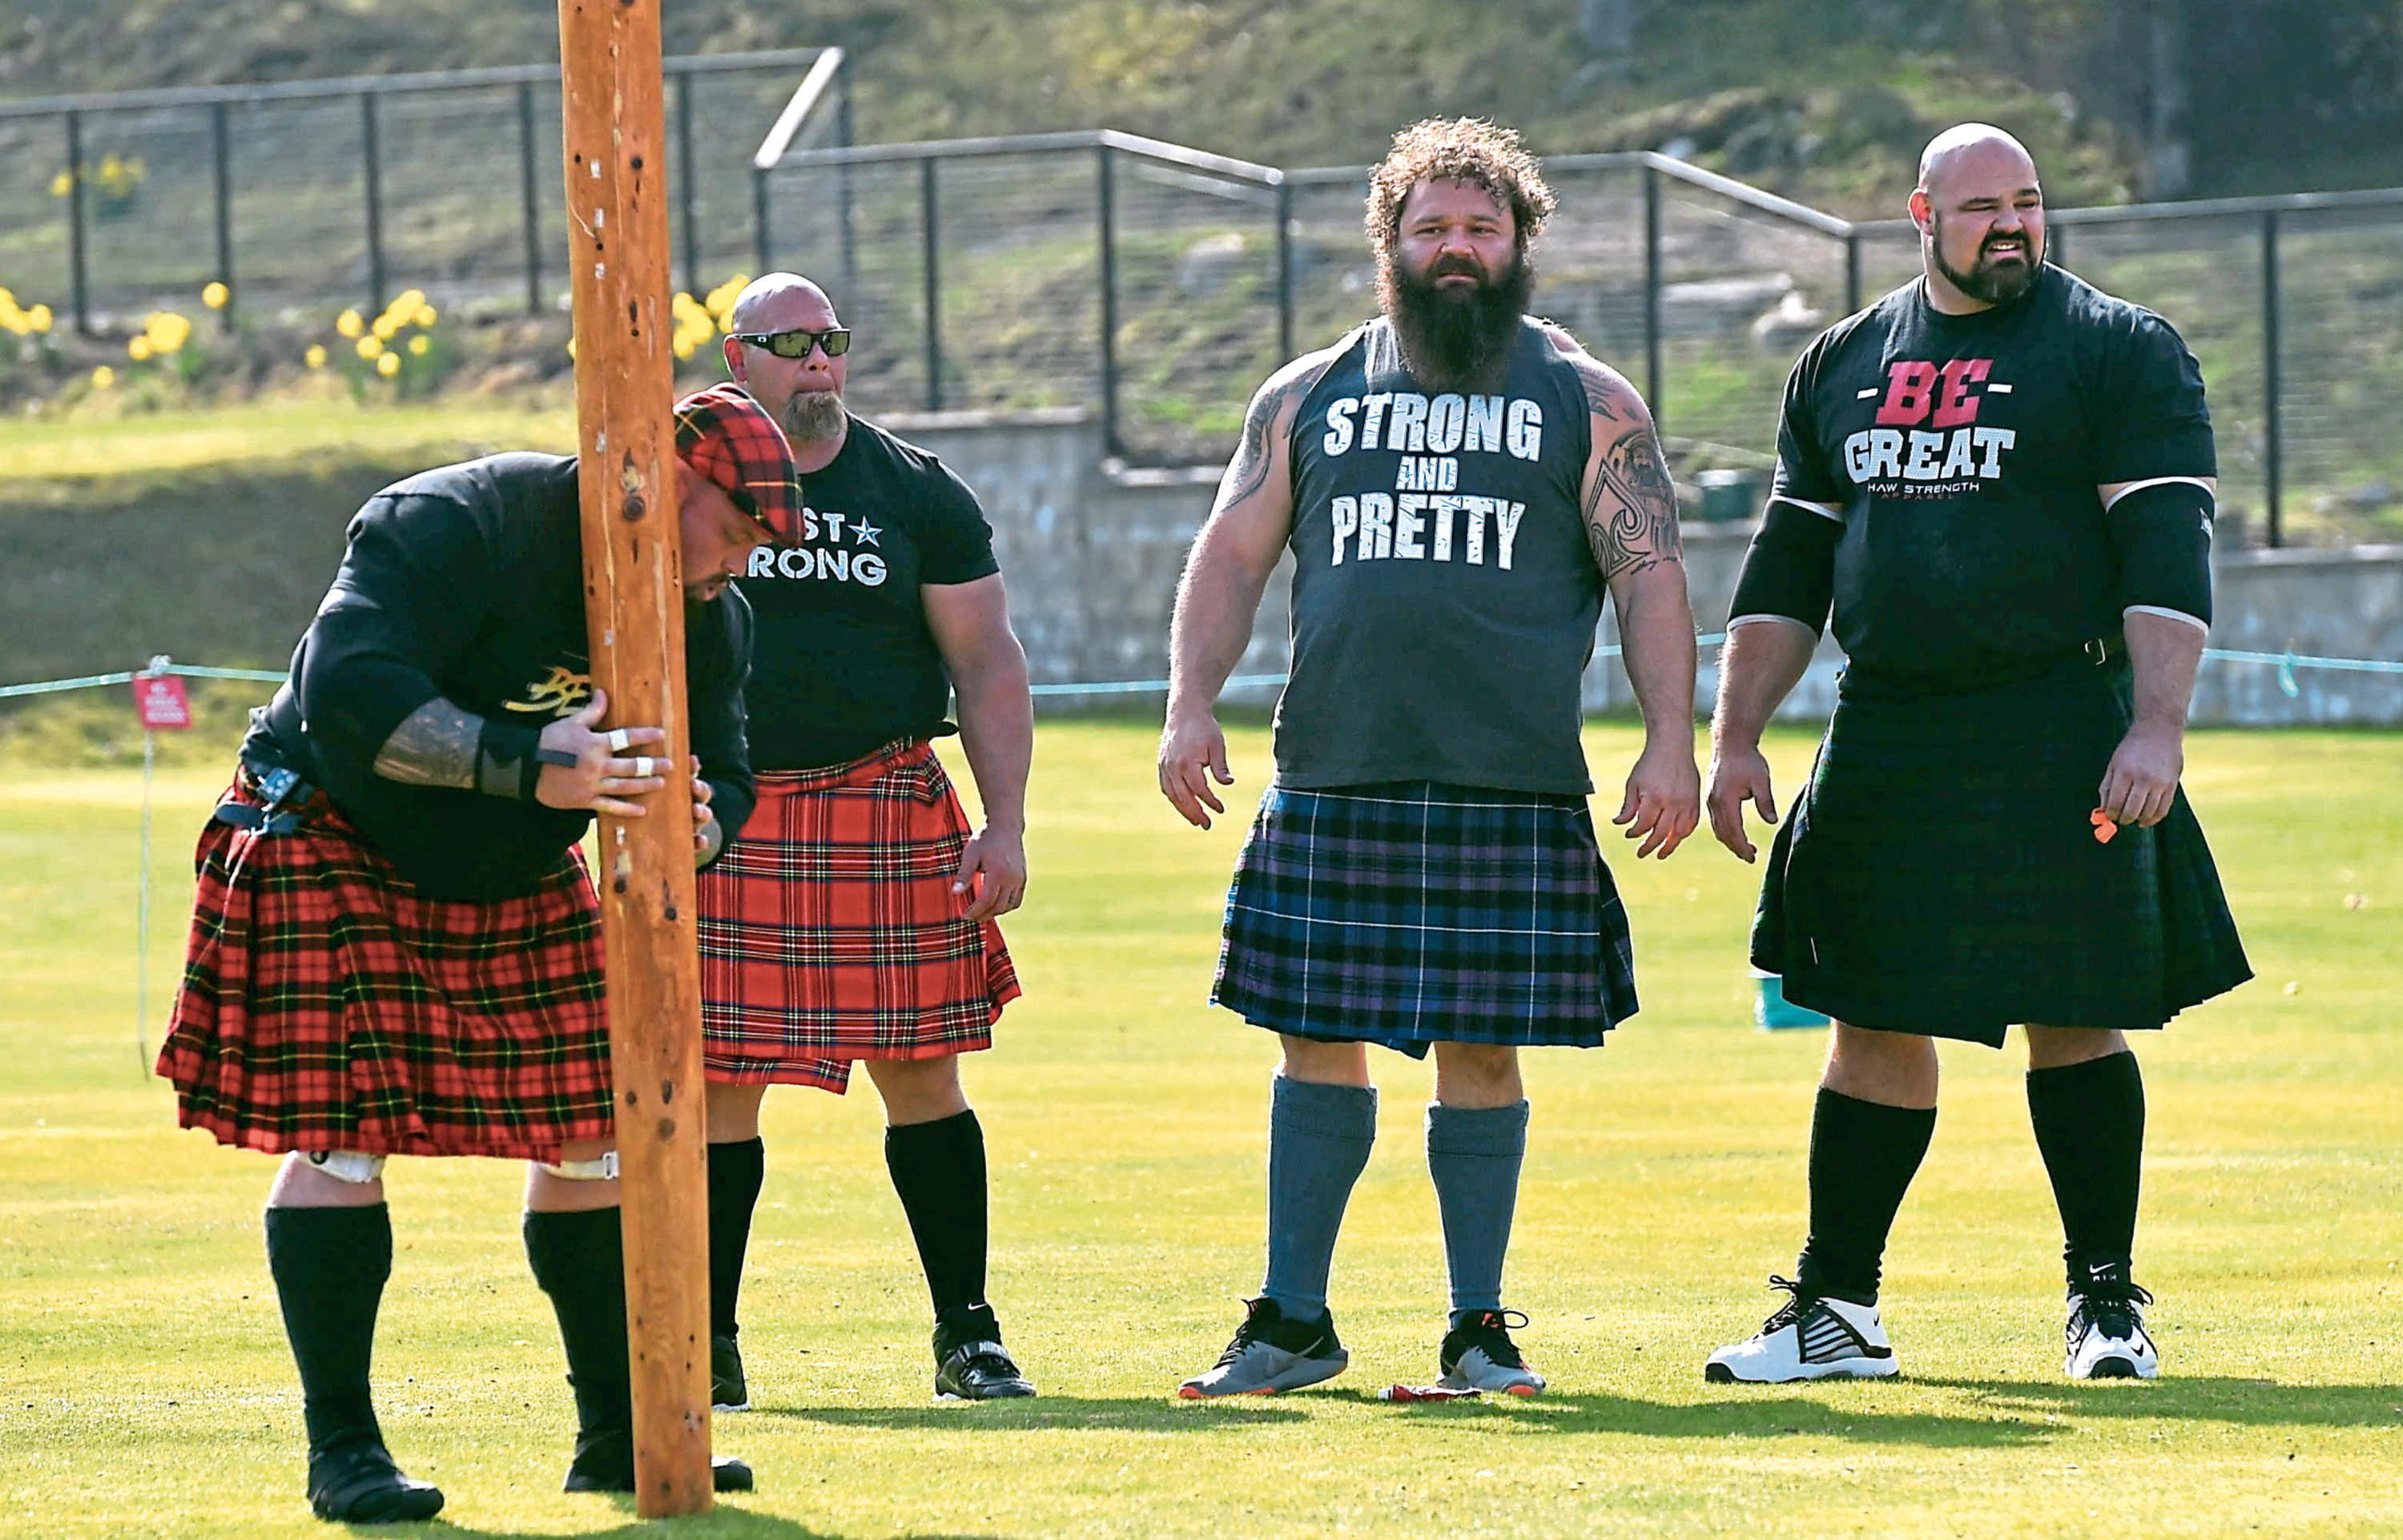 Four of the world's strongest men are filming at Braemar for a TV show